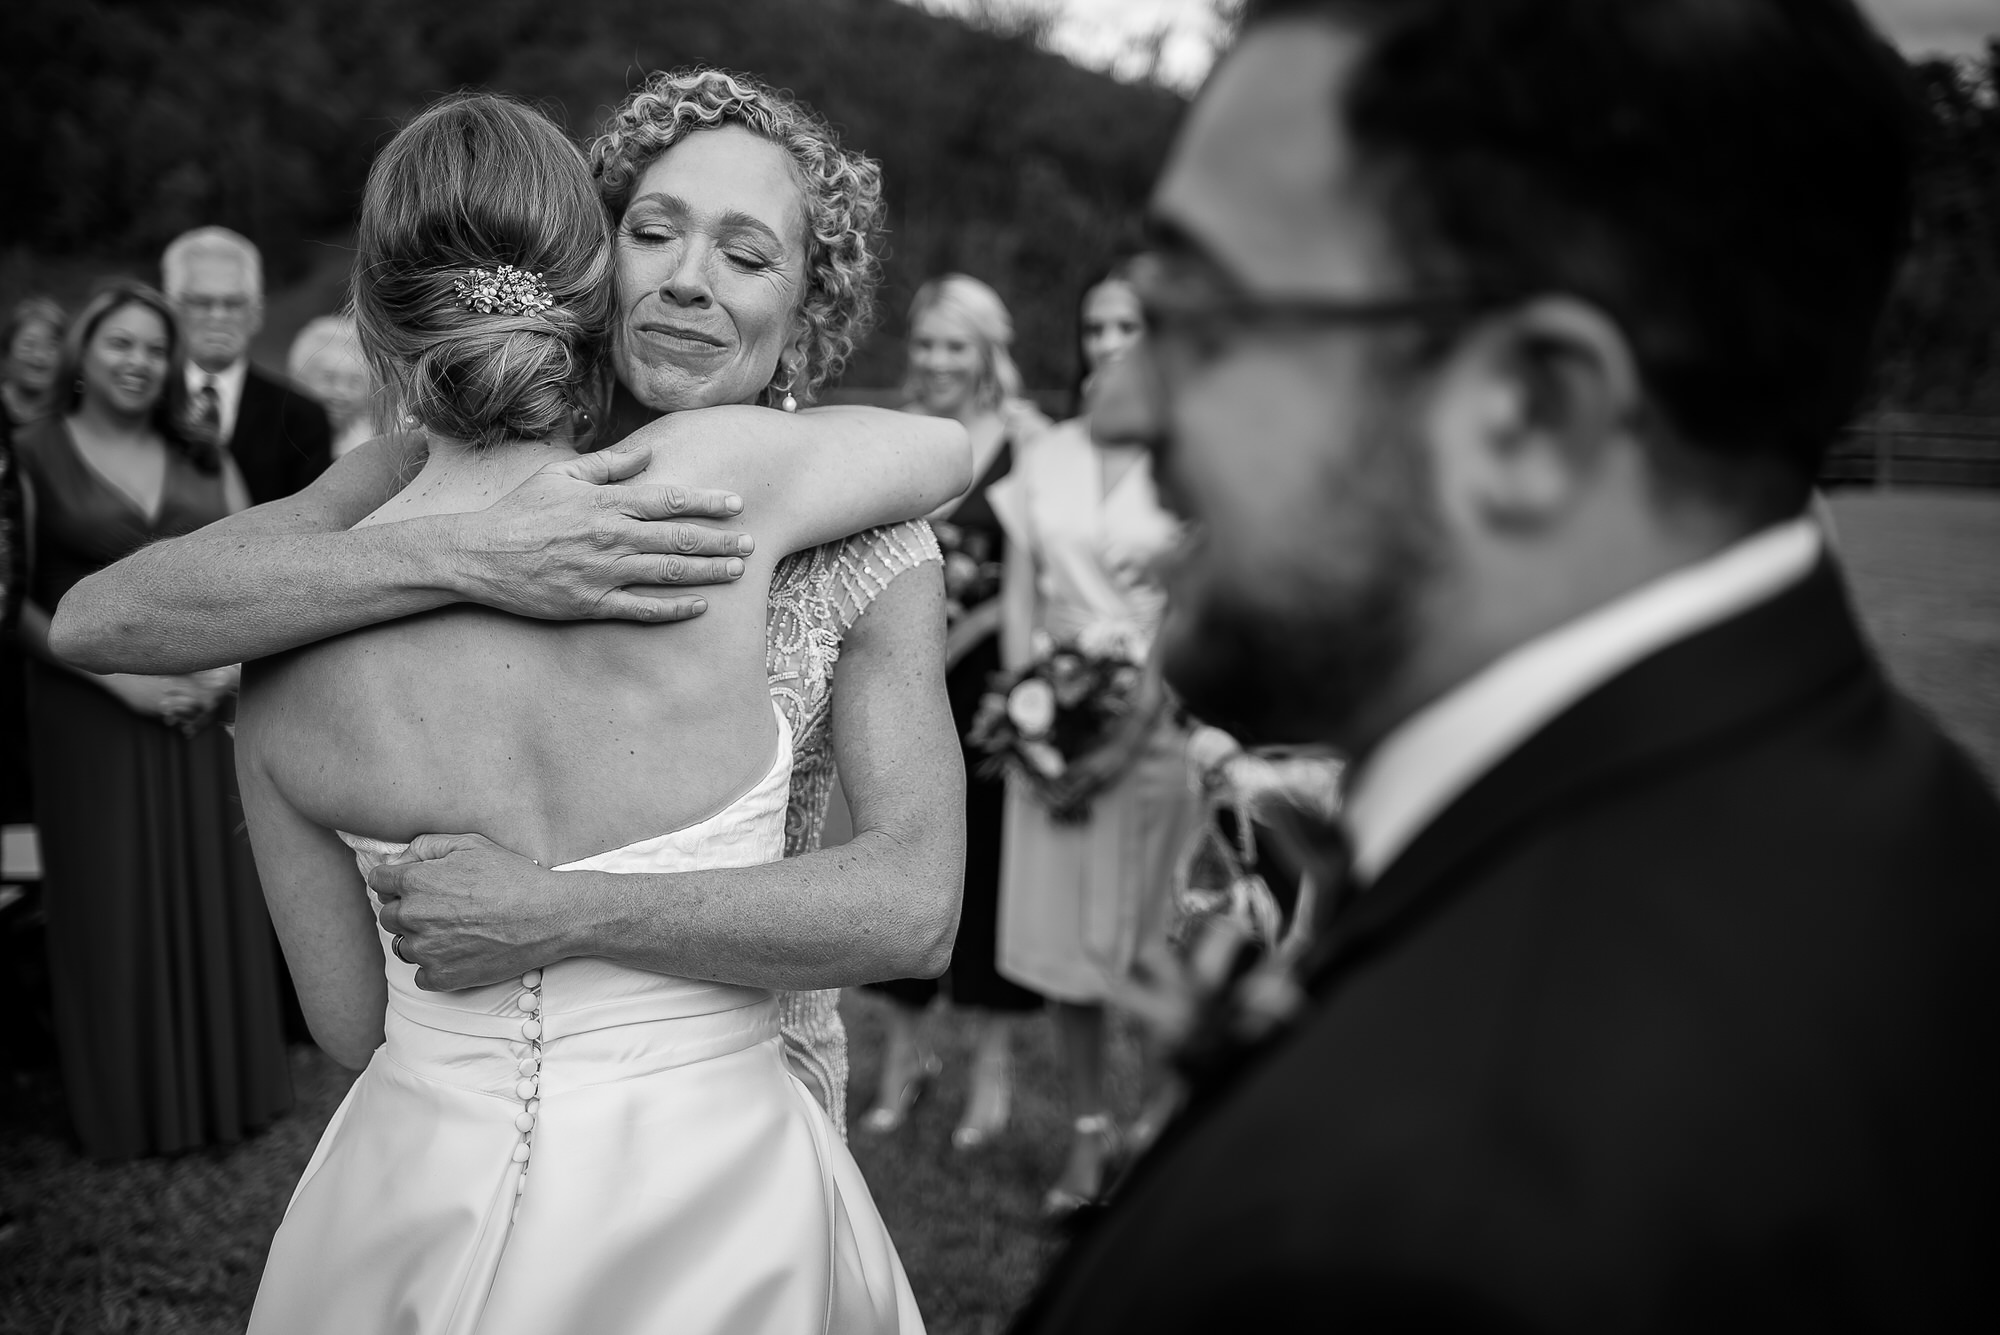 Mom and bride caress at wedding ceremony - Photo by Tyler Wirken - Kansas City